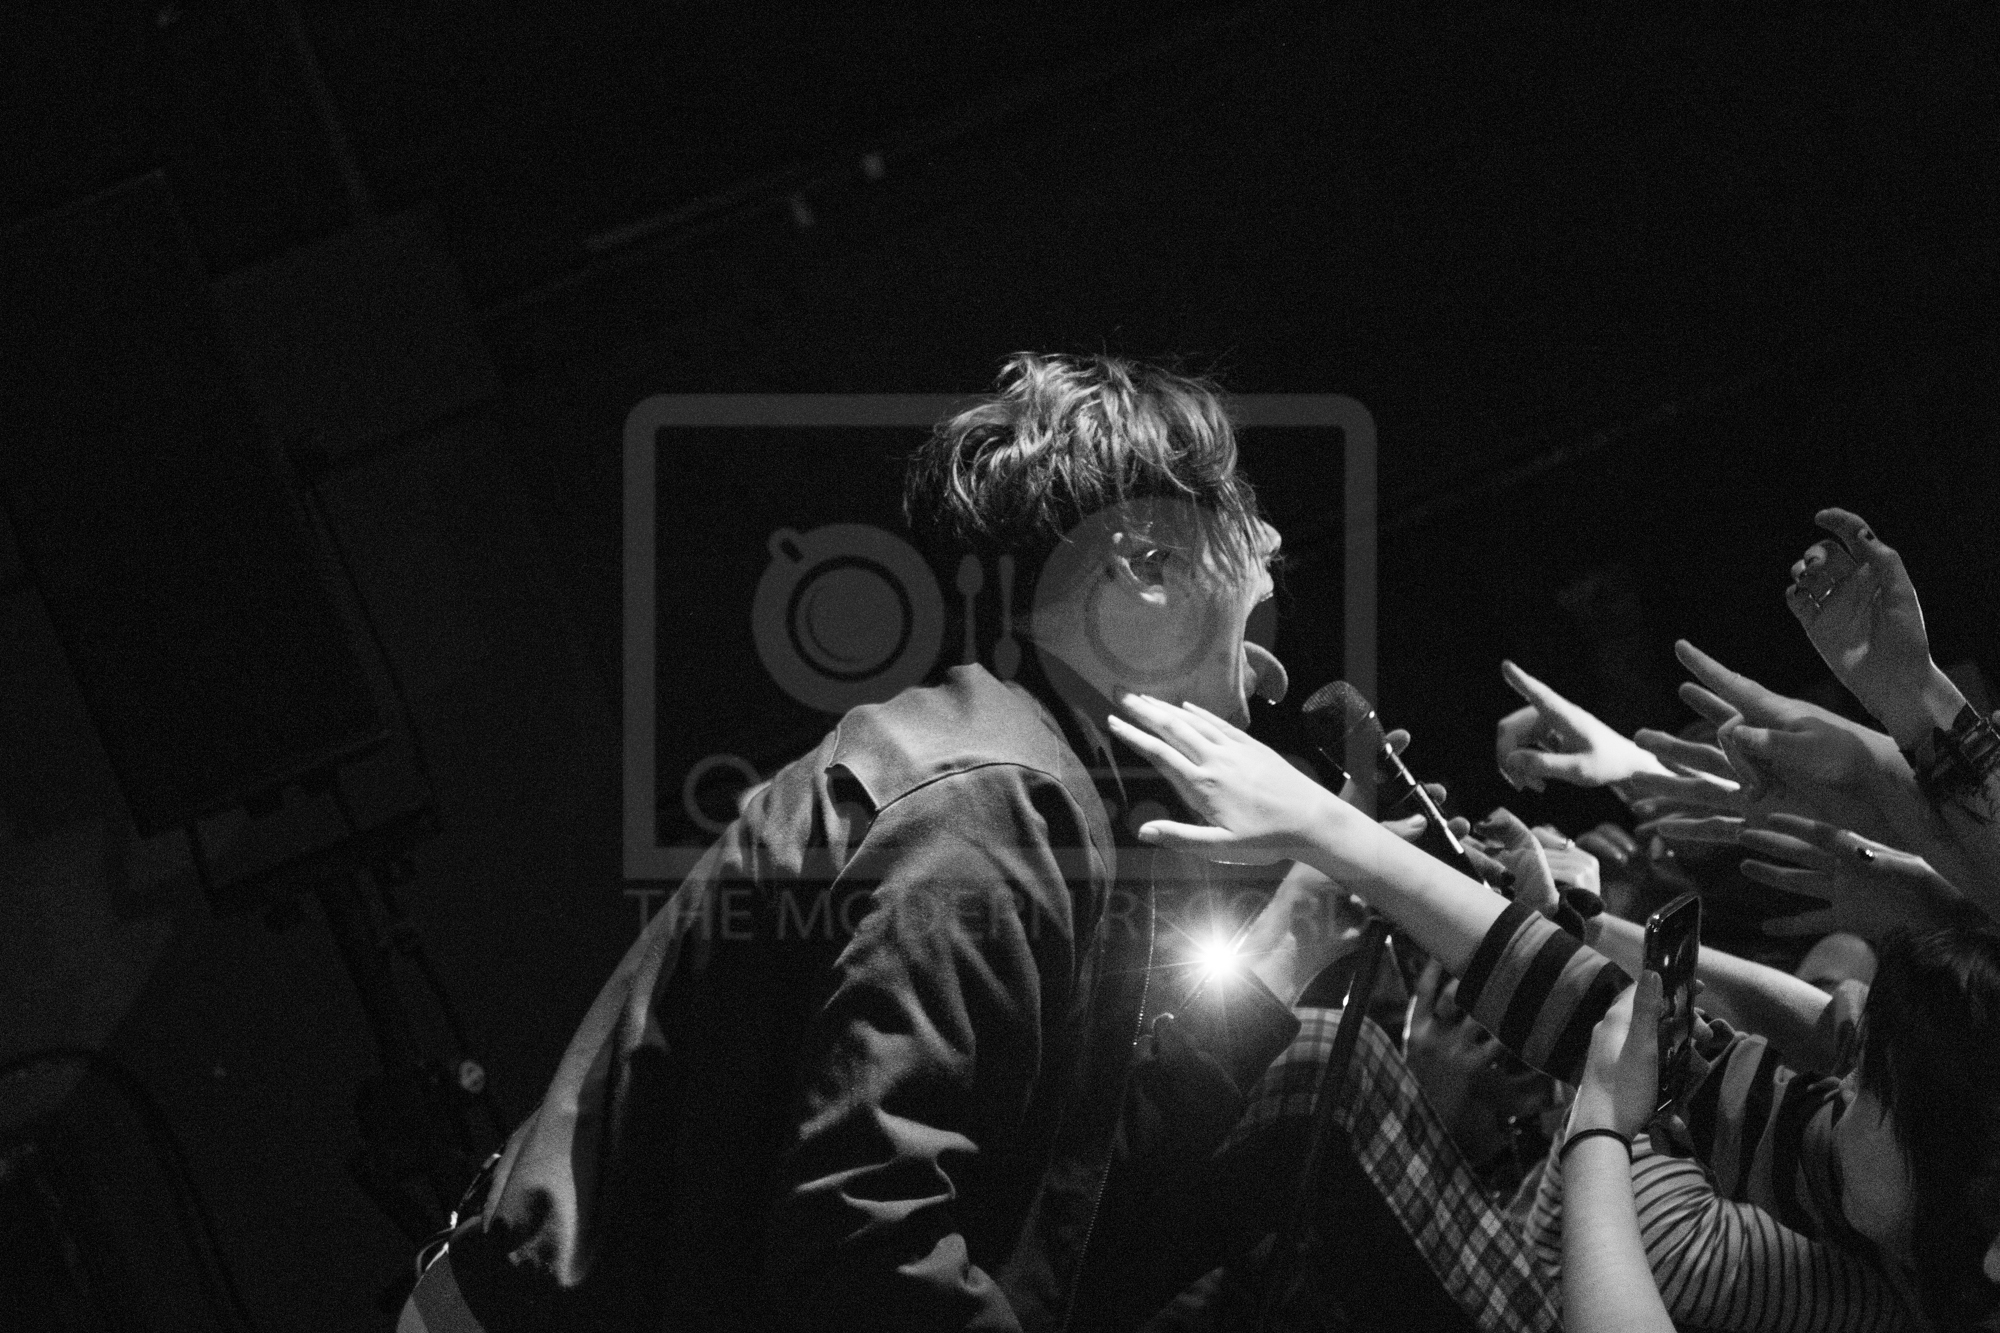 Yungblud - O2 Academy2, Newcastle - 10-03-19 Picture by Will Gorman Photo-7904.JPG